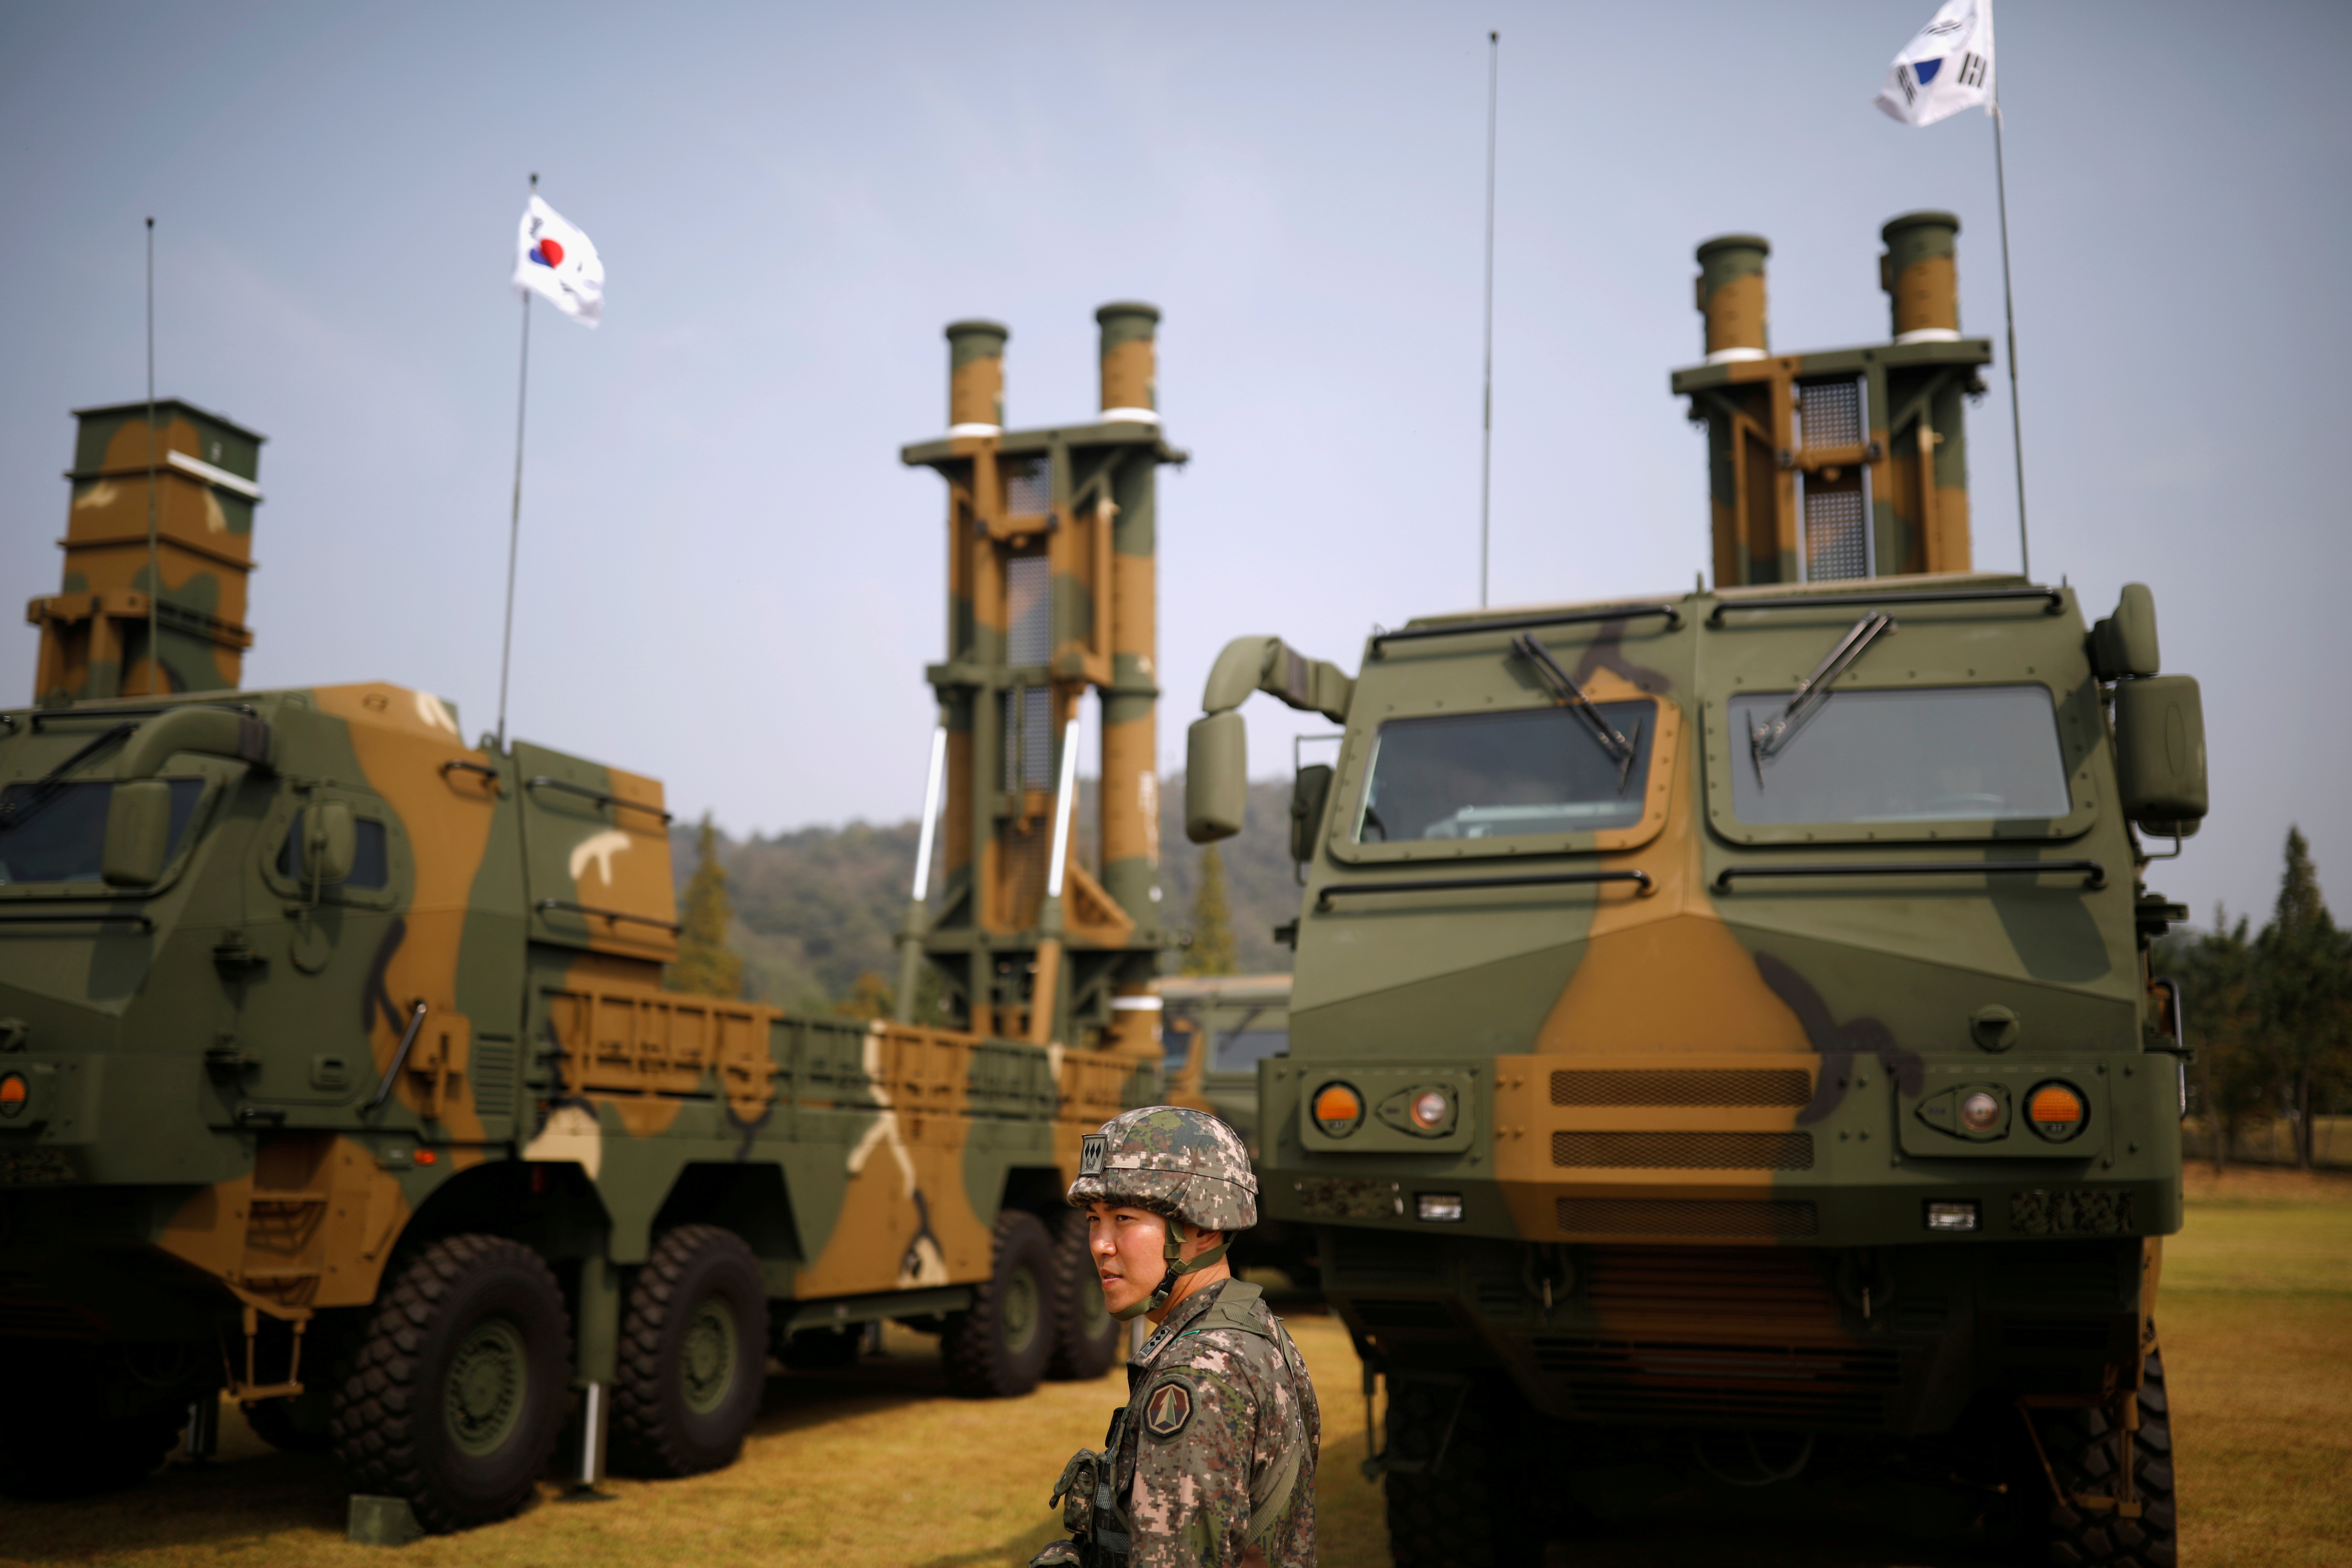 A South Korean soldier walks past Hyunmoo-2 (L) and Hyunmoo-3 ballistic missiles ahead of a celebration to mark the 69th anniversary of Korea Armed Forces Day, in Pyeongtaek, South Korea, September 25, 2017. REUTERS/Kim Hong-Ji/File Photo